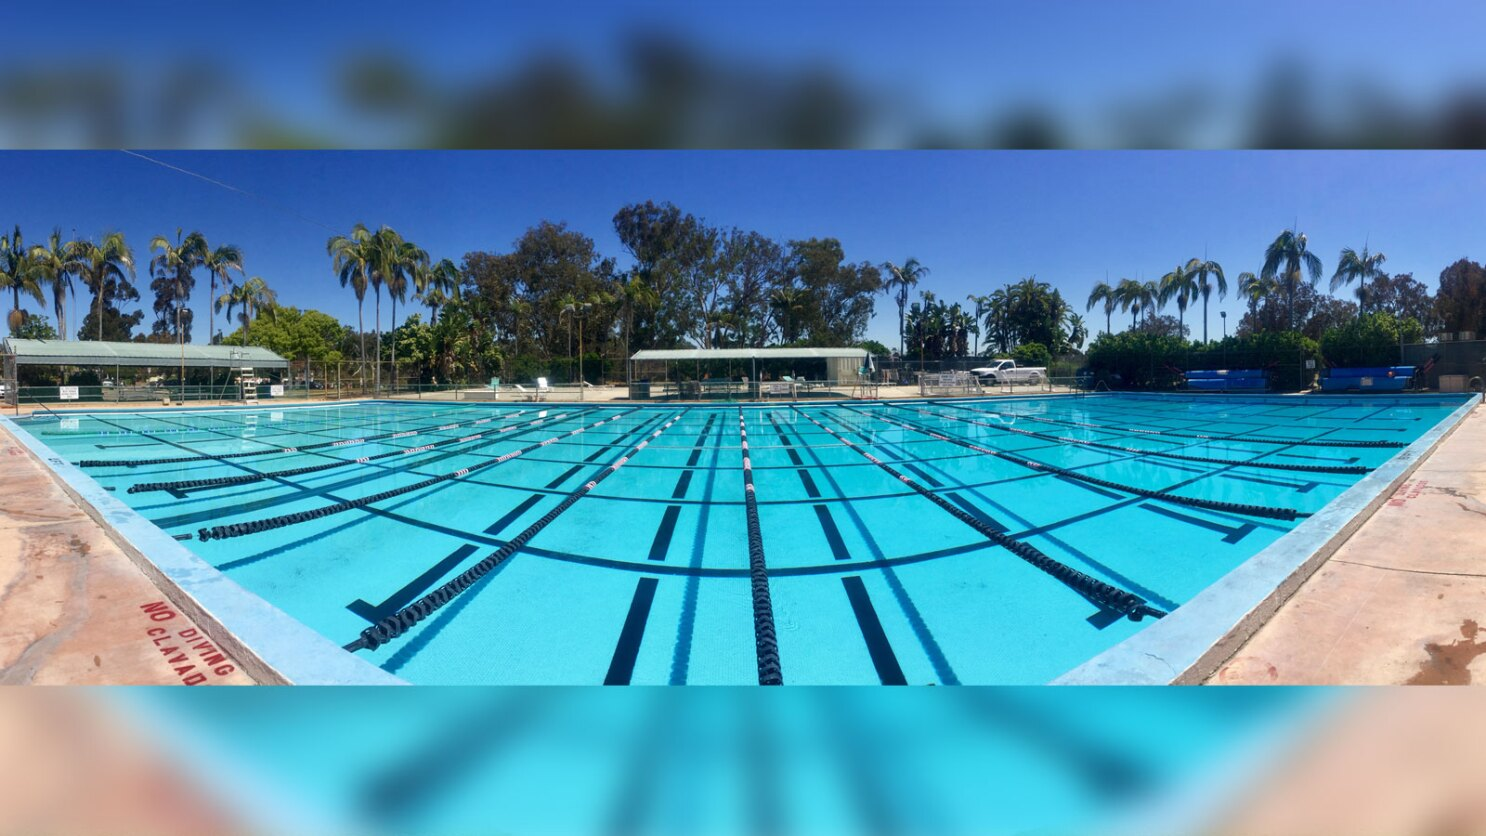 Bud Kearns Pool In Balboa Park Is Slated To Get Millions In Mandatory Fixes The San Diego Union Tribune